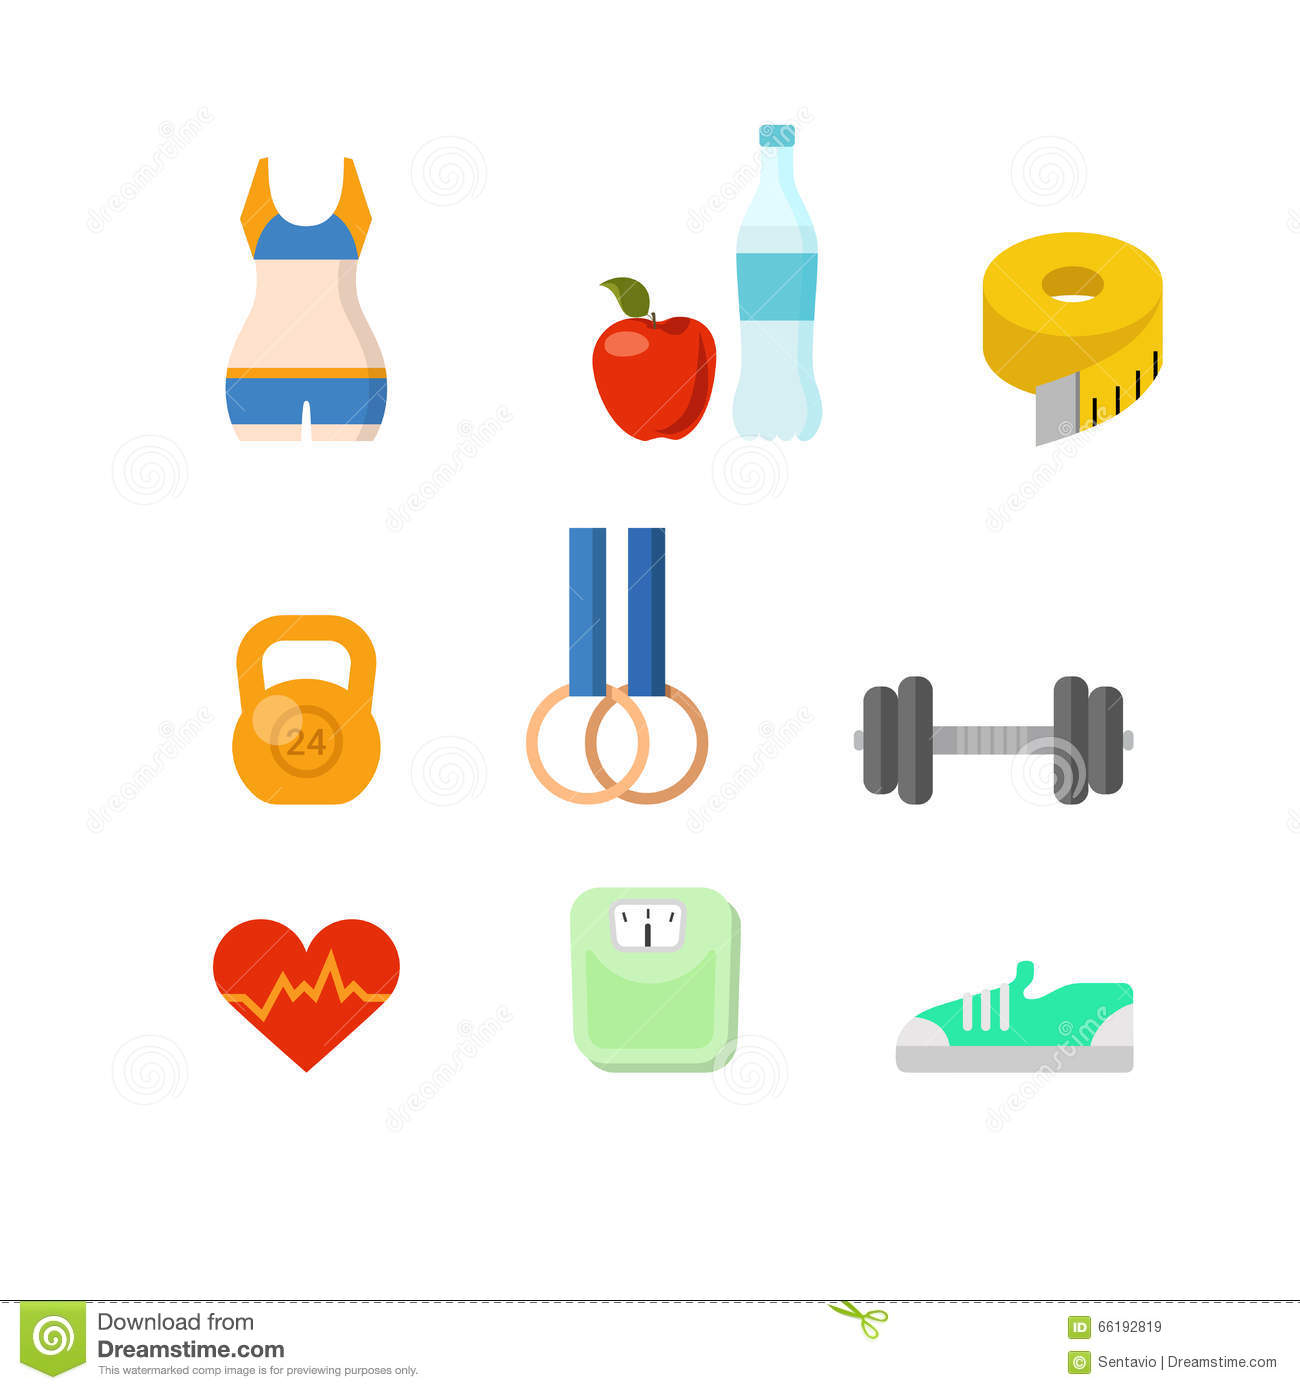 health sport app icon cartoon vector cartoondealercom